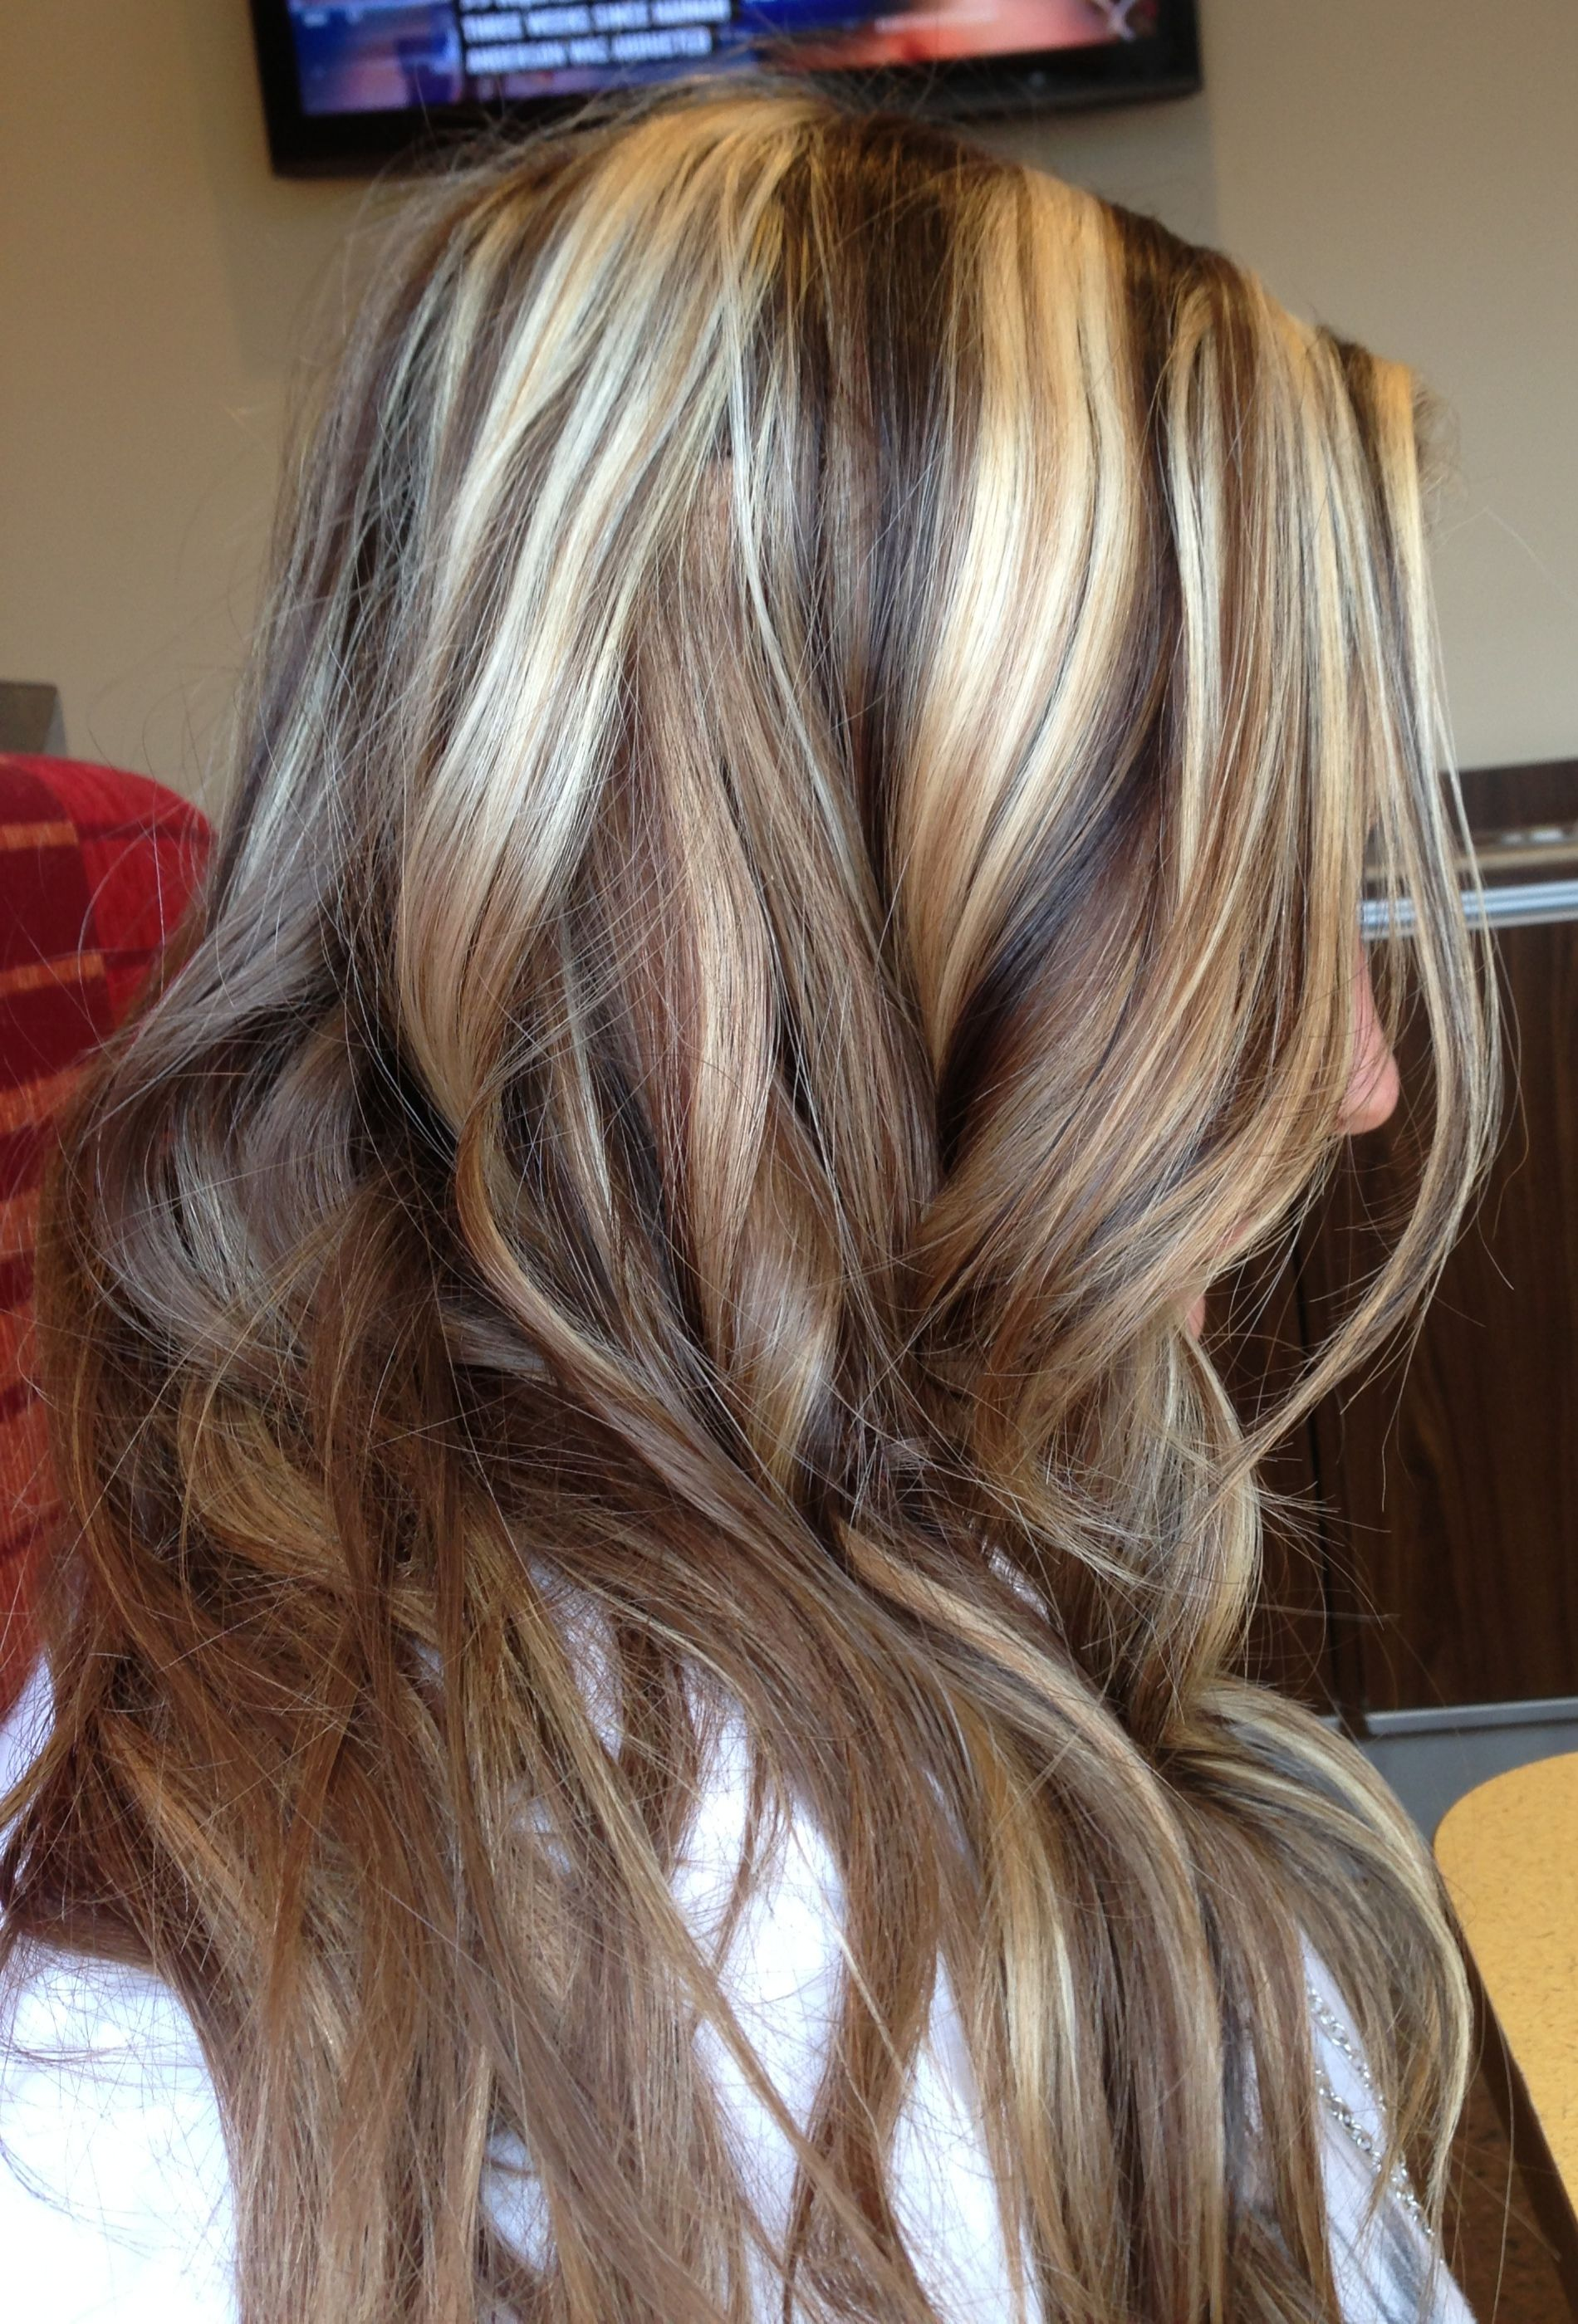 Pin By Jen Sladek On Hair Nails And Make Up Long Hair Color Hair Color Highlights Trendy Hair Color